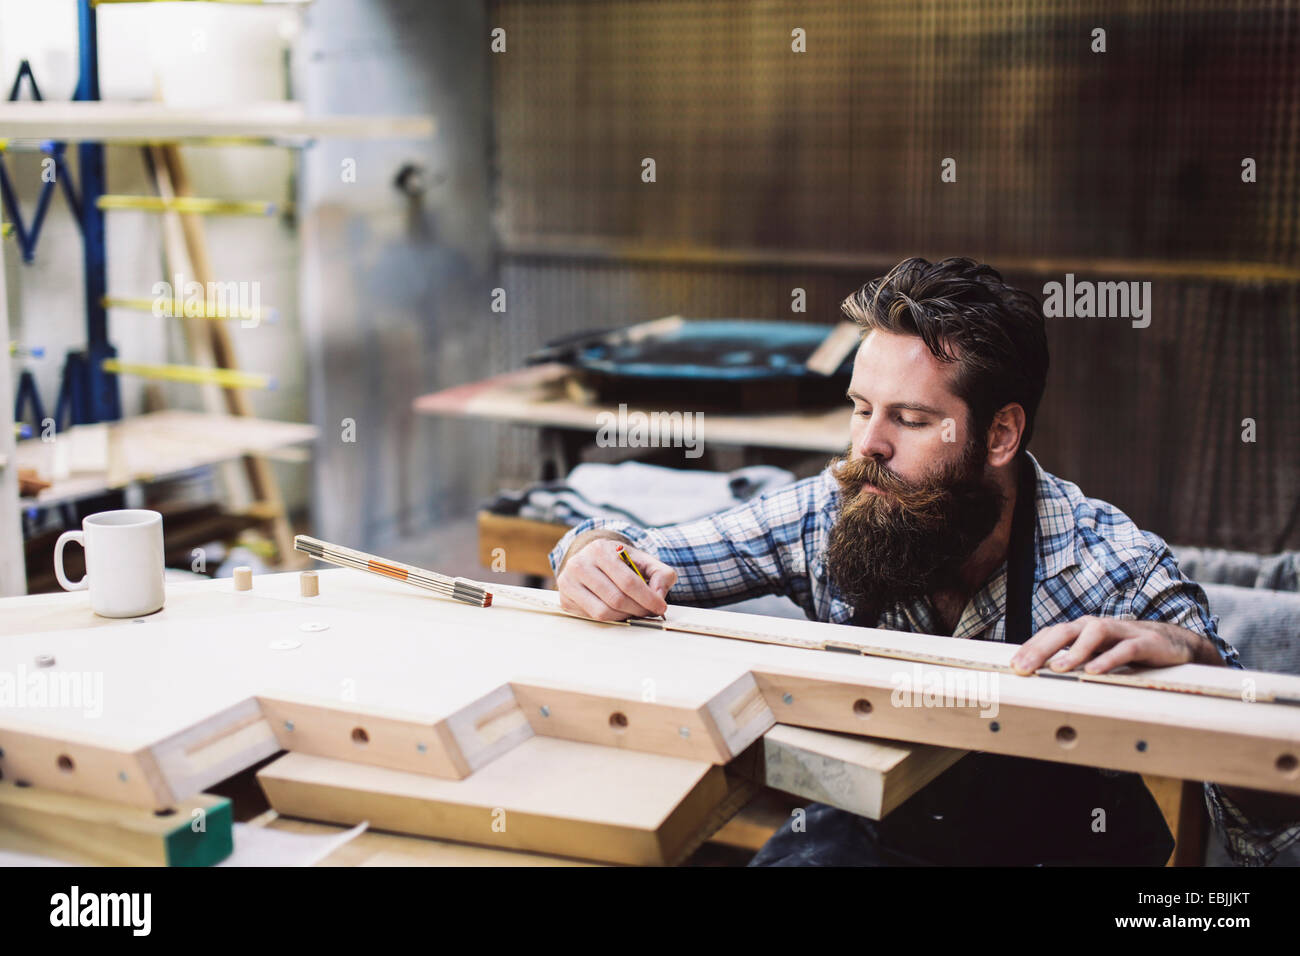 Cropped shot of mid adult craftsman measuring wood component in organ workshop - Stock Image